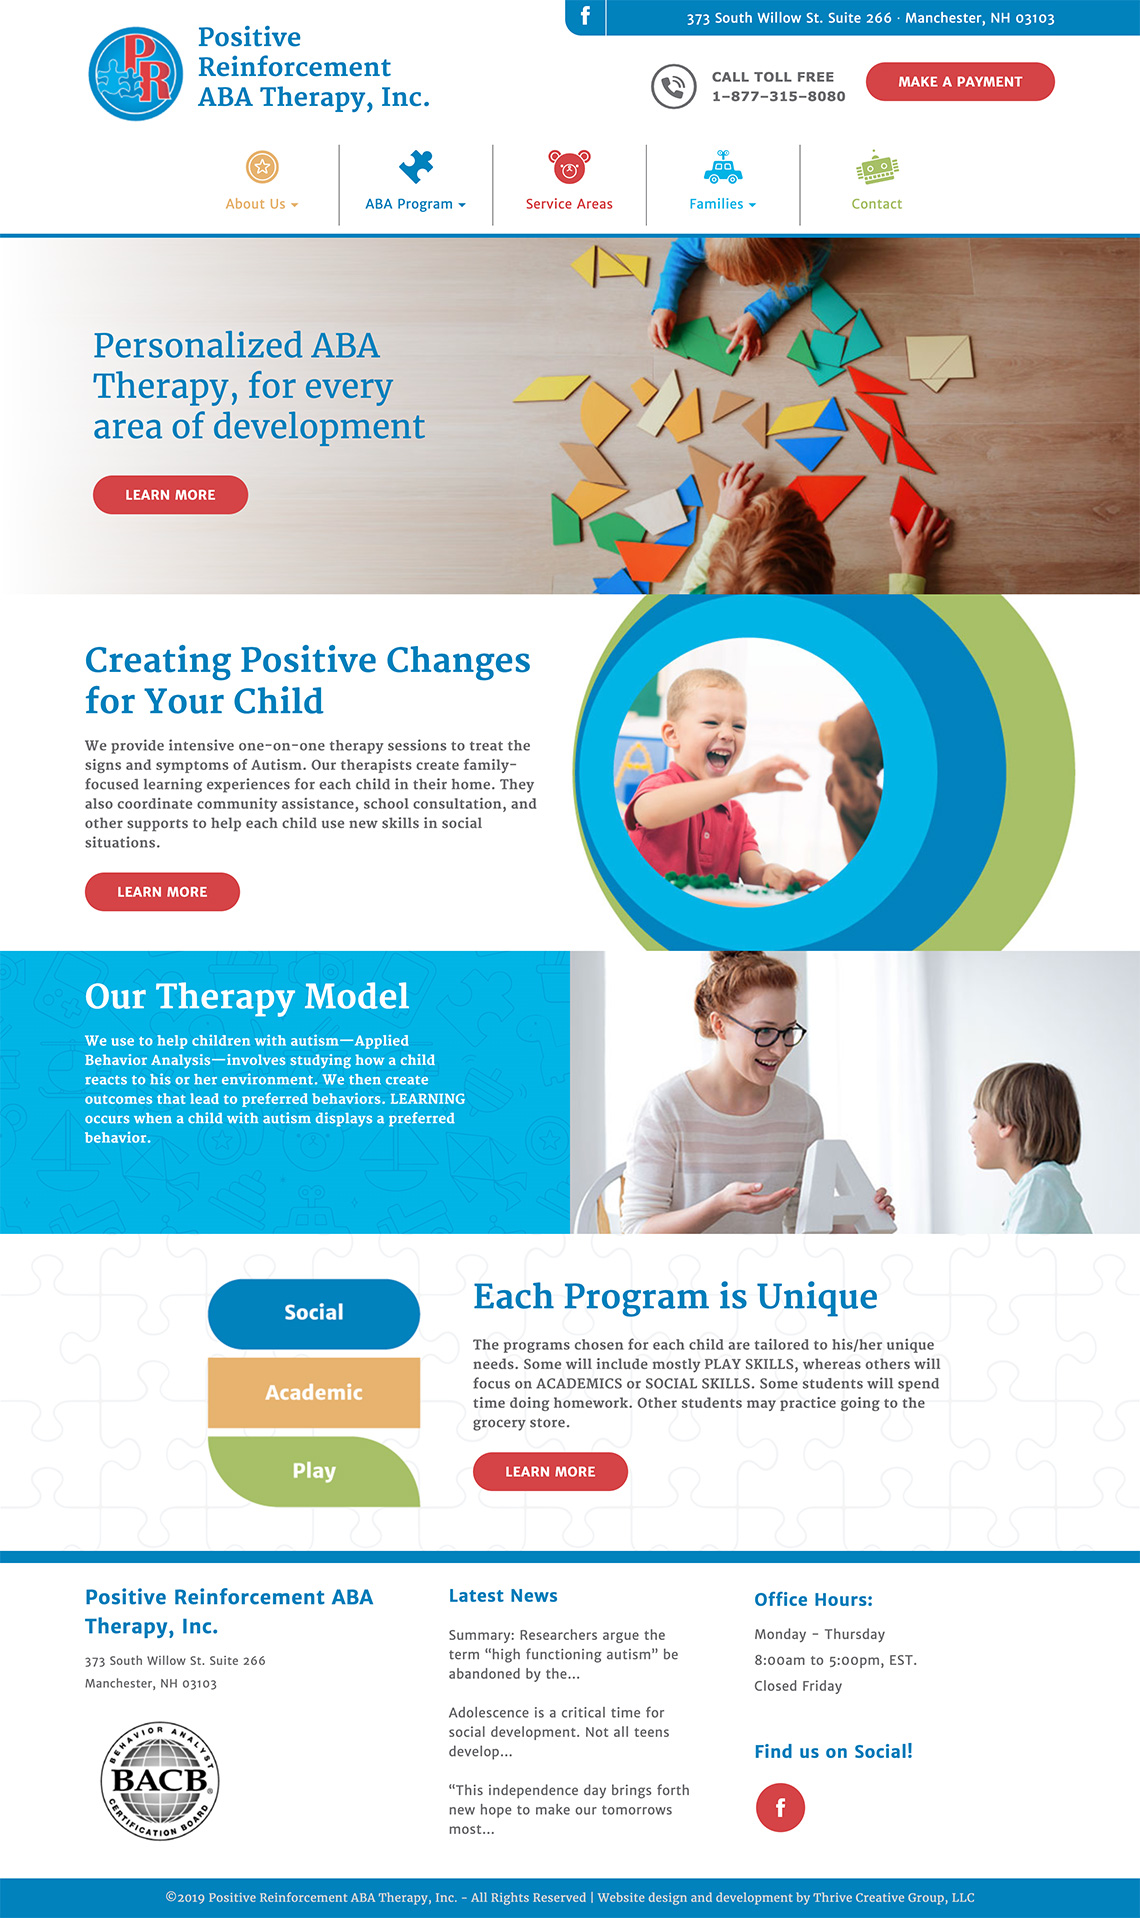 Positive-Reinforcement-ABA-Therapy-website-design